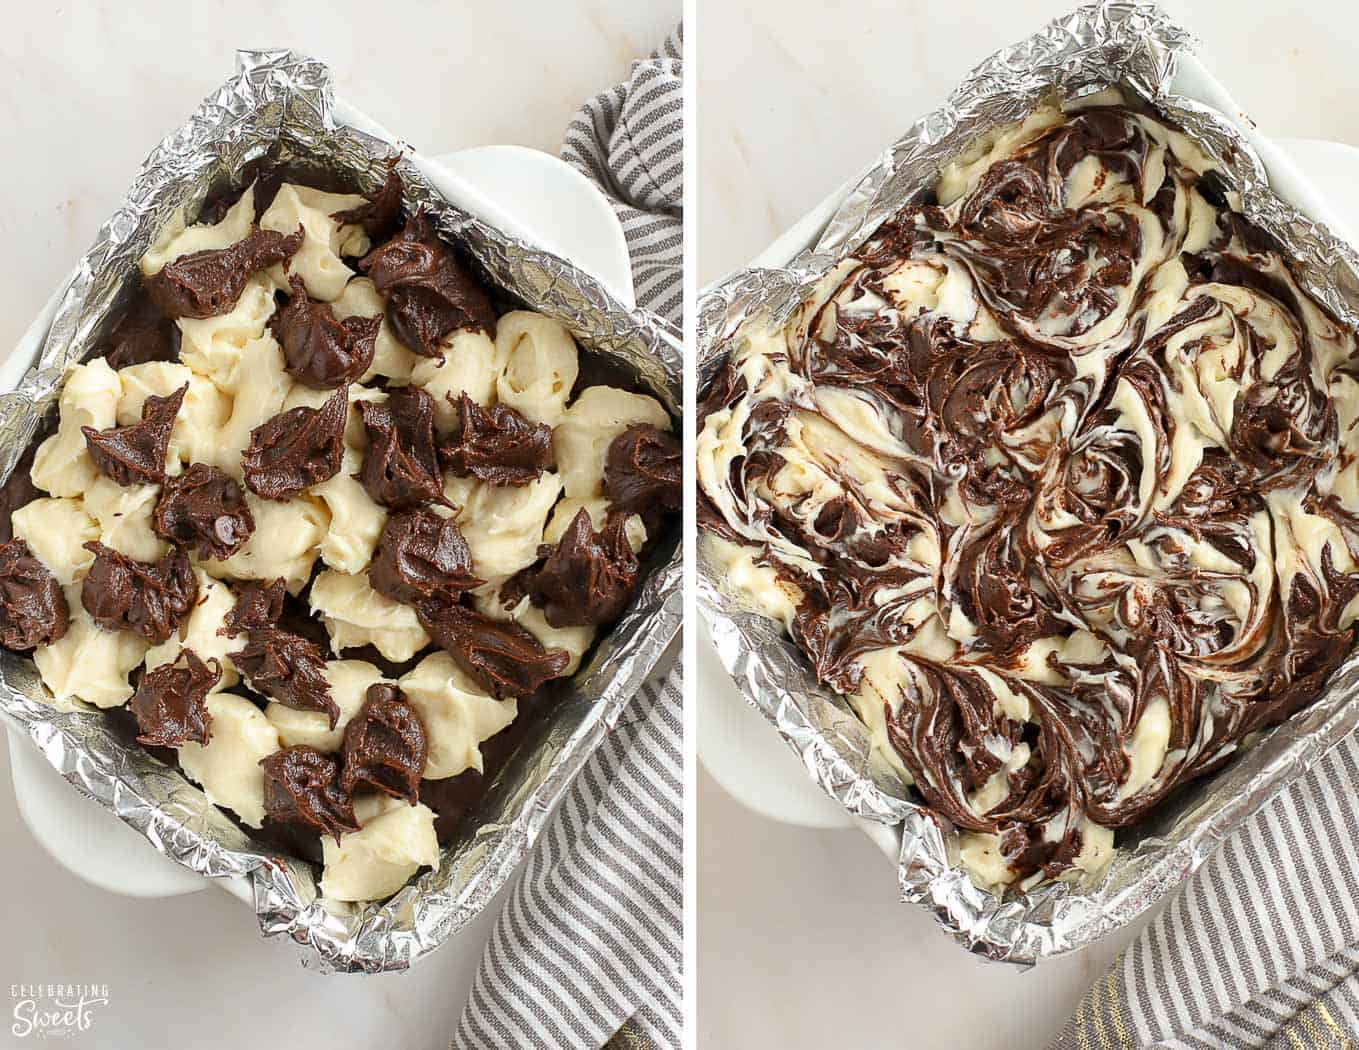 Swirls of cream cheese and brownie batter in a foil-lined baking pan.